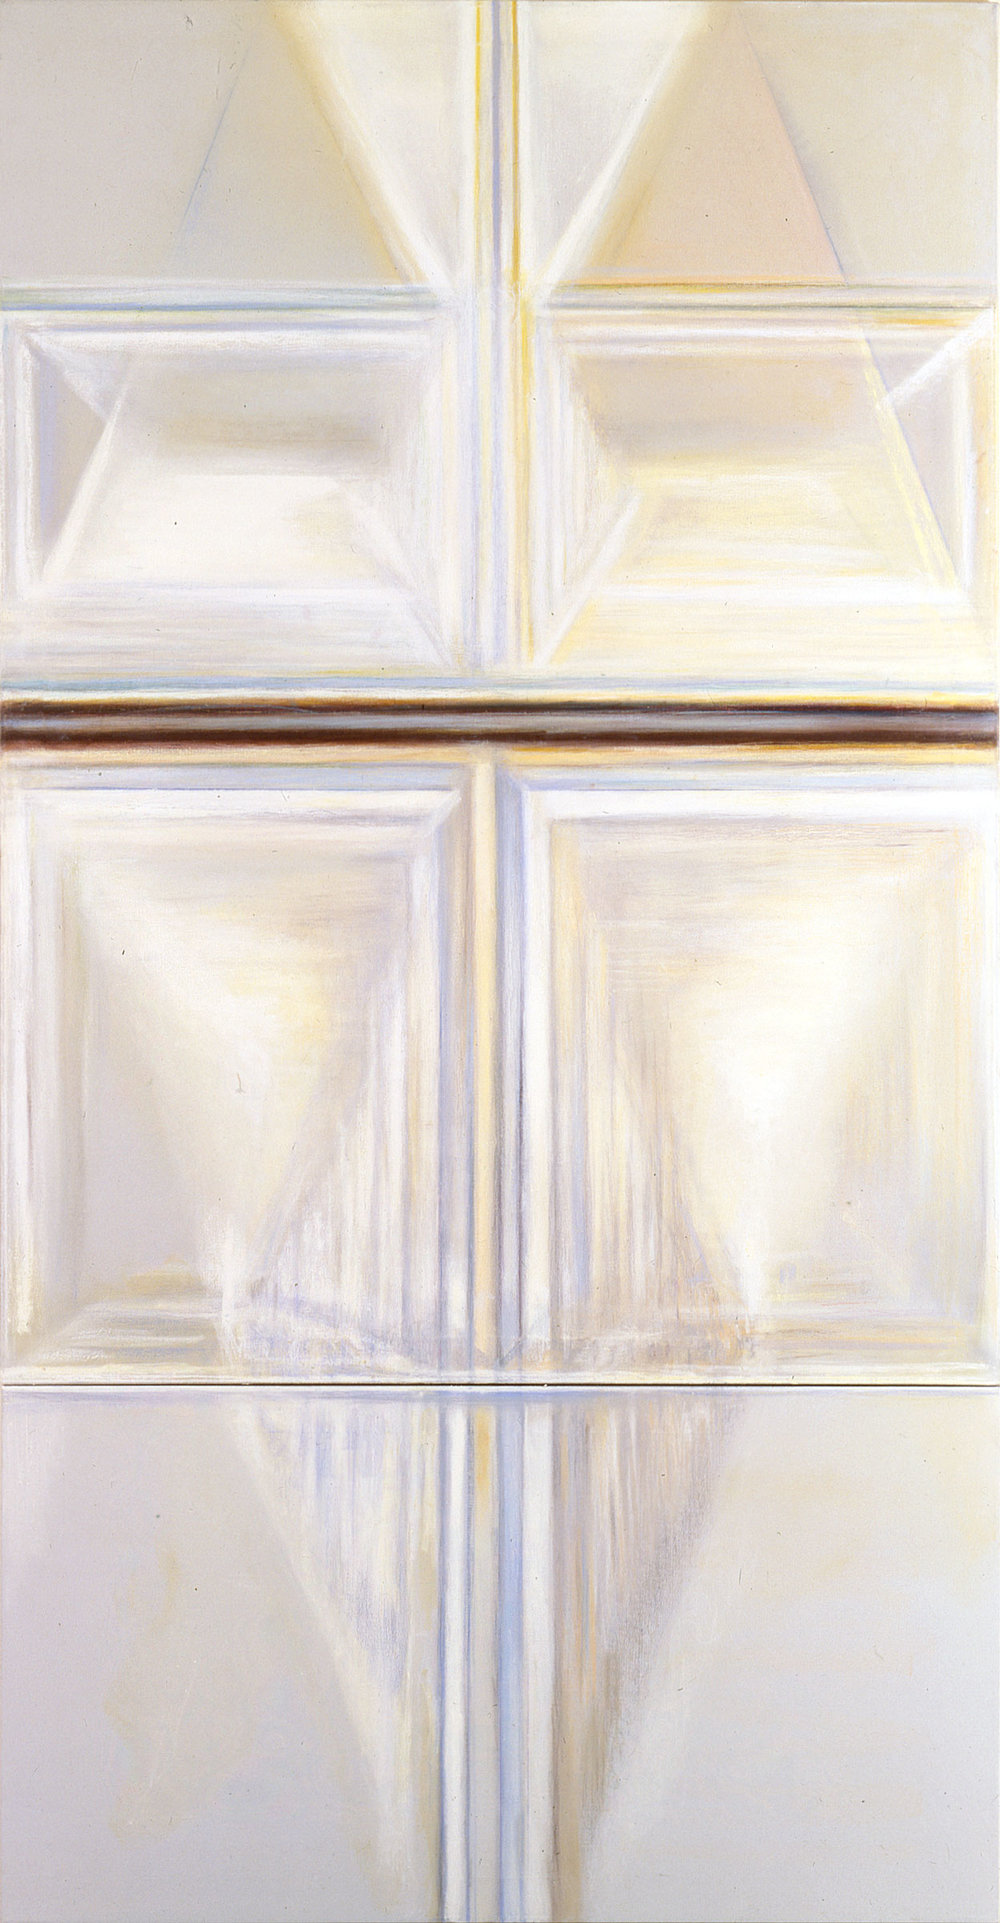 Hedda Sterne, Untitled #16, 1989, Oil on canvas, 100 1/4 x 51 3/4 in. (254.6 x 131.4 cm); Collection of Museum of Contemporary Art, San Diego; Gift of Deborah and David Guss, 1992.26